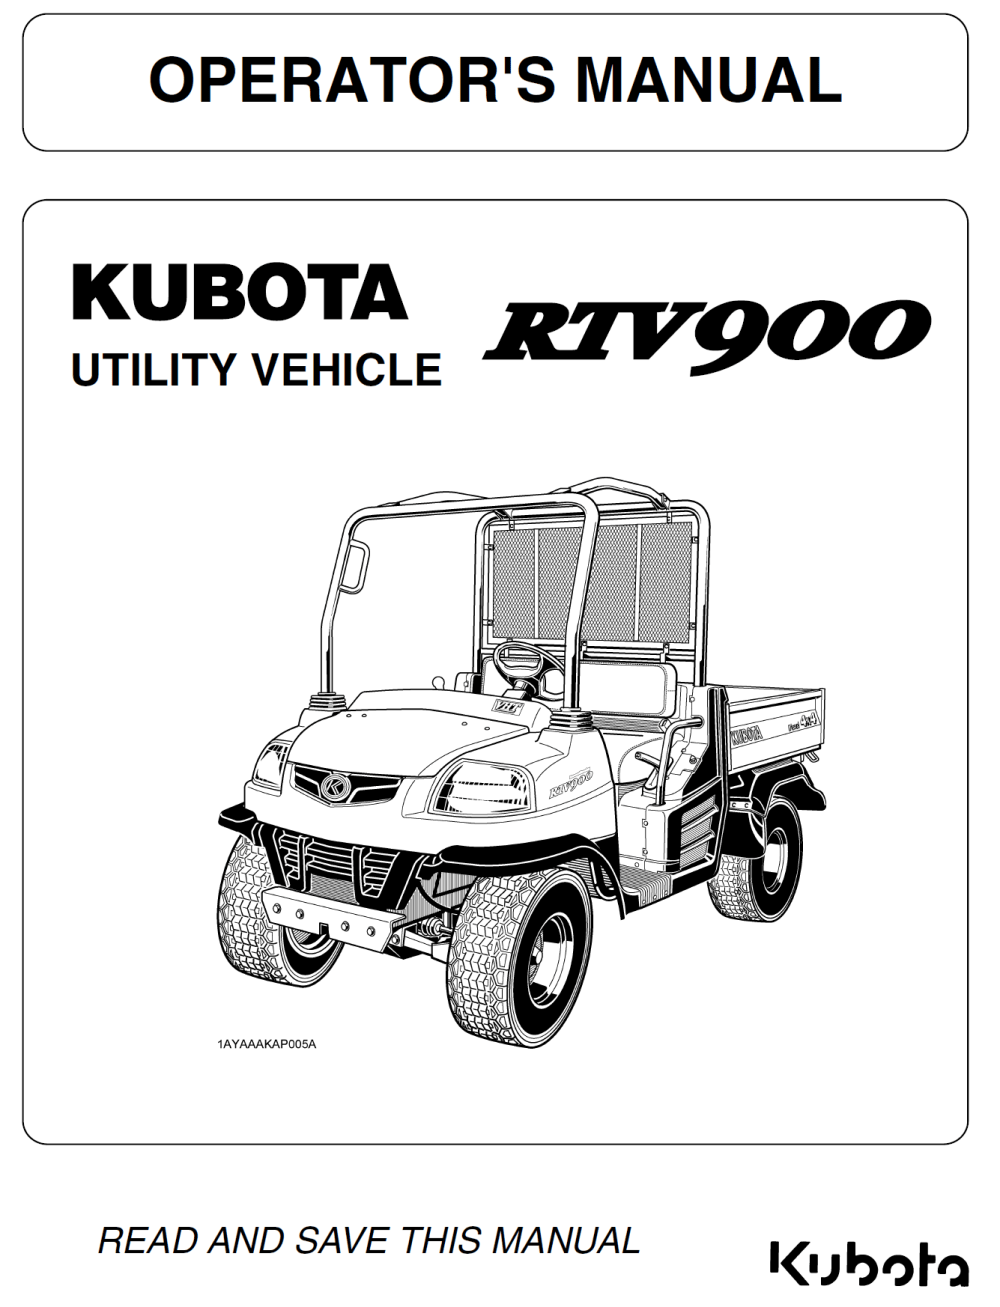 medium resolution of kubota rtv900 operators manual garton tractor californiakubota rtv900 operators manual garton tractor california kubota u0026